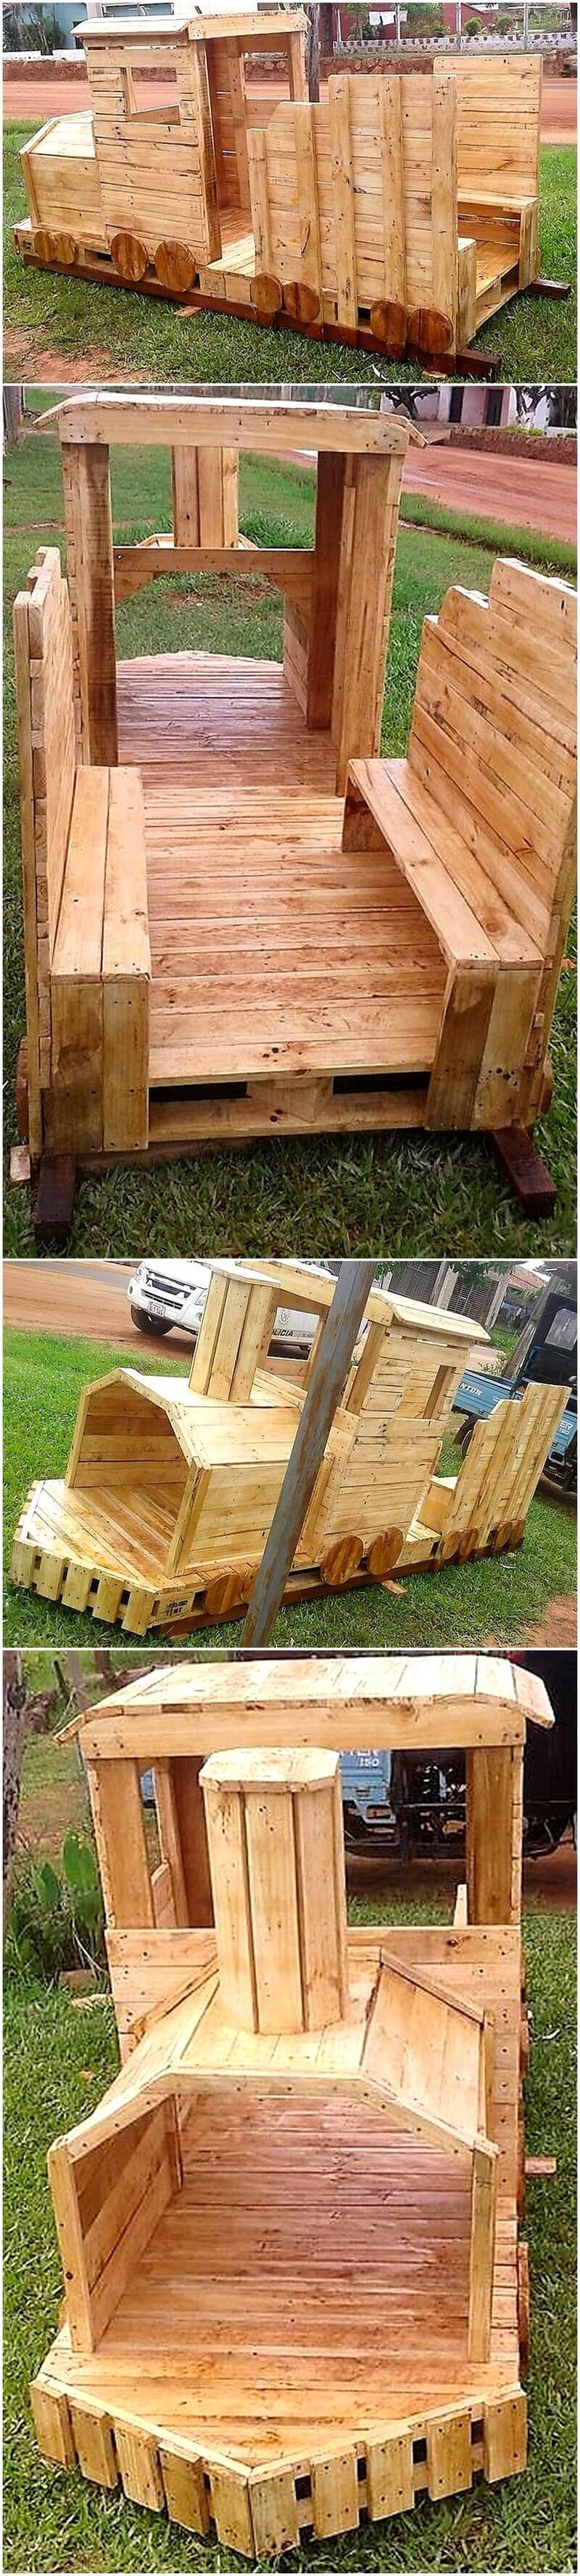 wood pallet engine for kids play